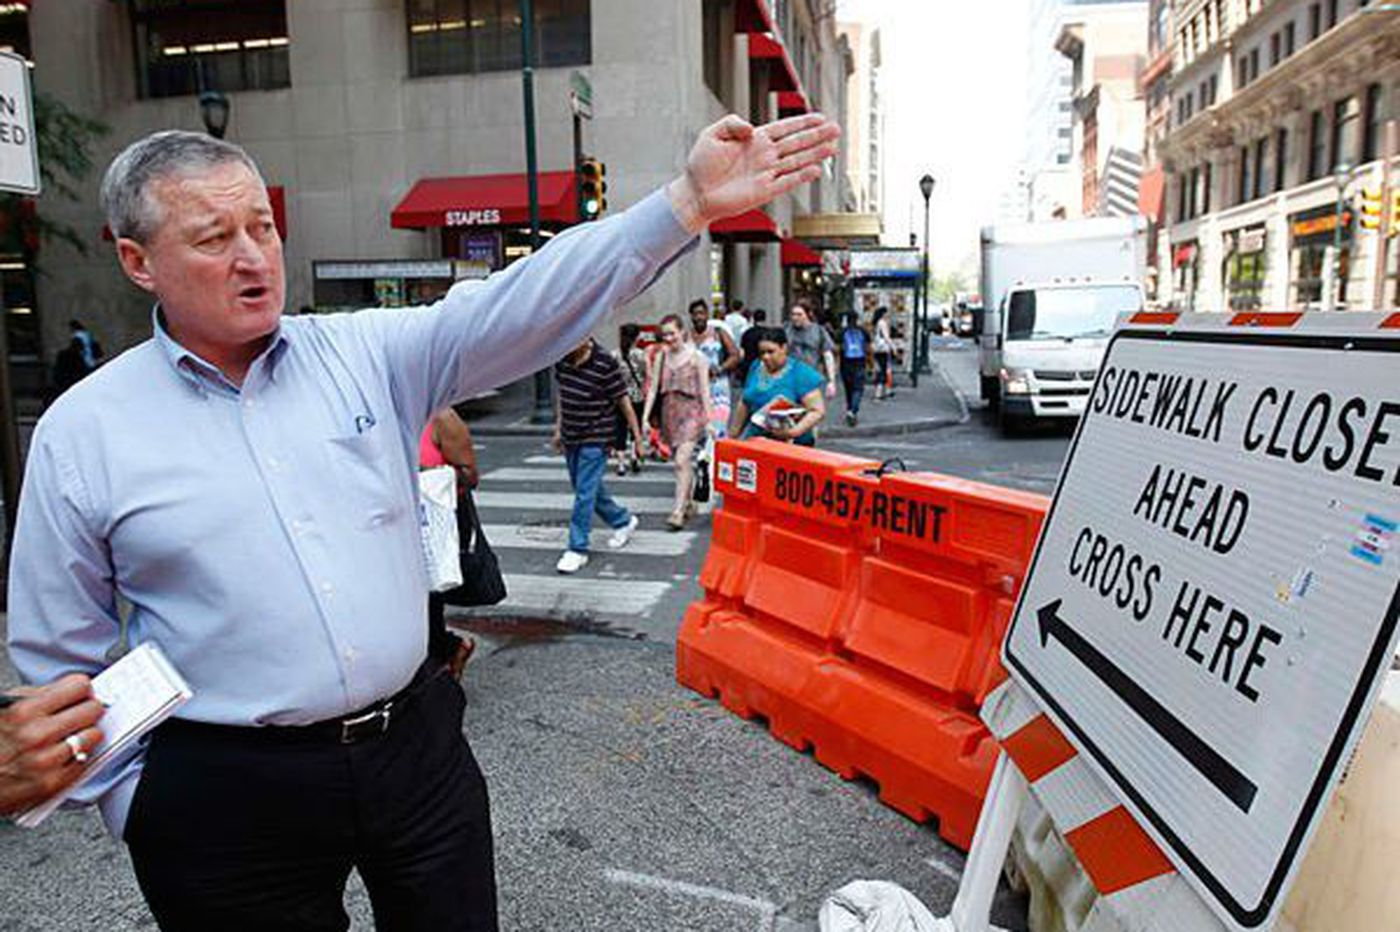 From potholes to preservation, how has Mayor Kenney lived up to his original campaign promises?